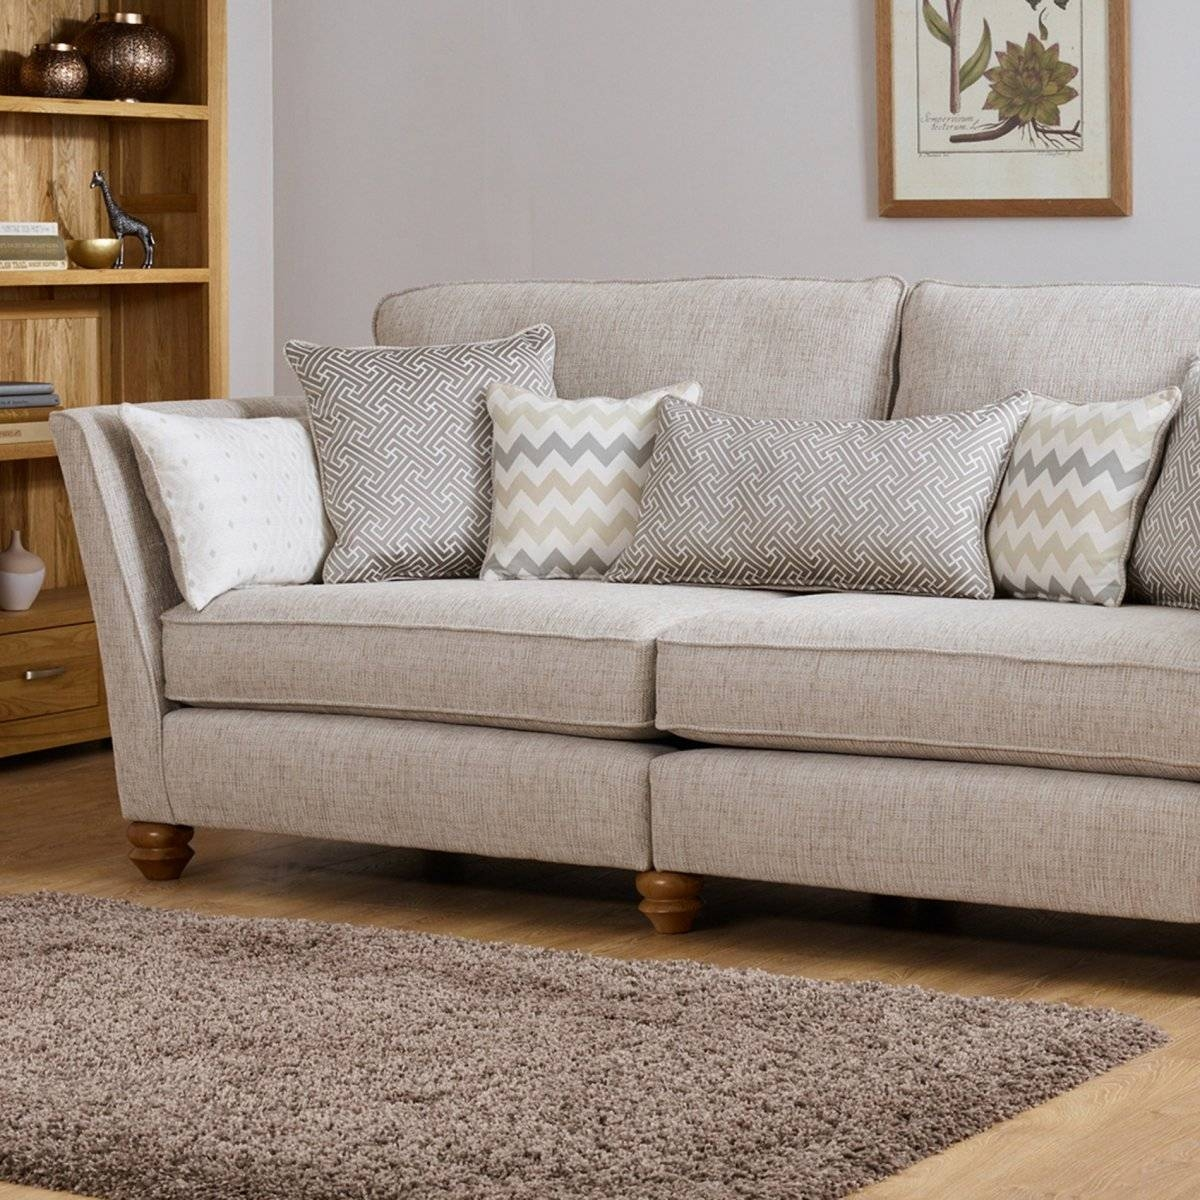 Gainsborough 3 Seater Sofa In Beige | Oak Furniture Land pertaining to Three Seater Sofas (Image 19 of 30)